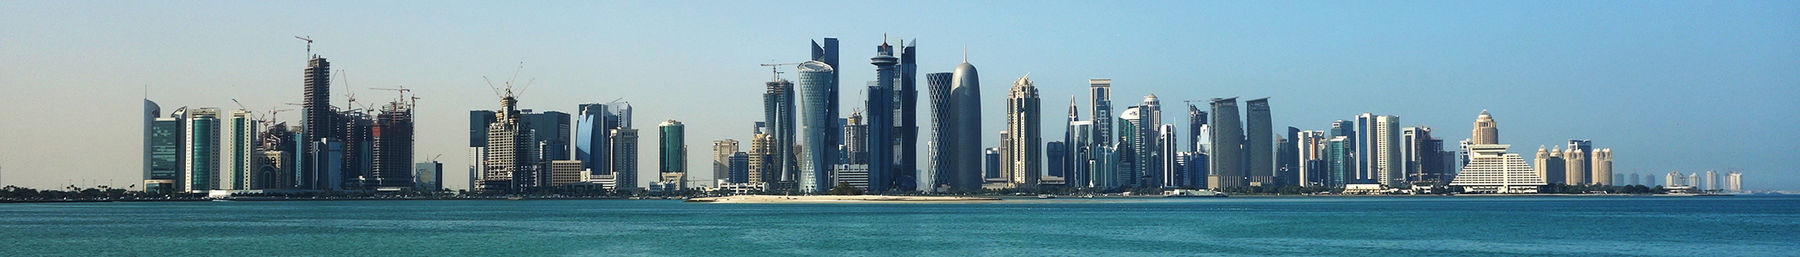 The Doha city skyline, featuring post-modern structures along the Corniche.